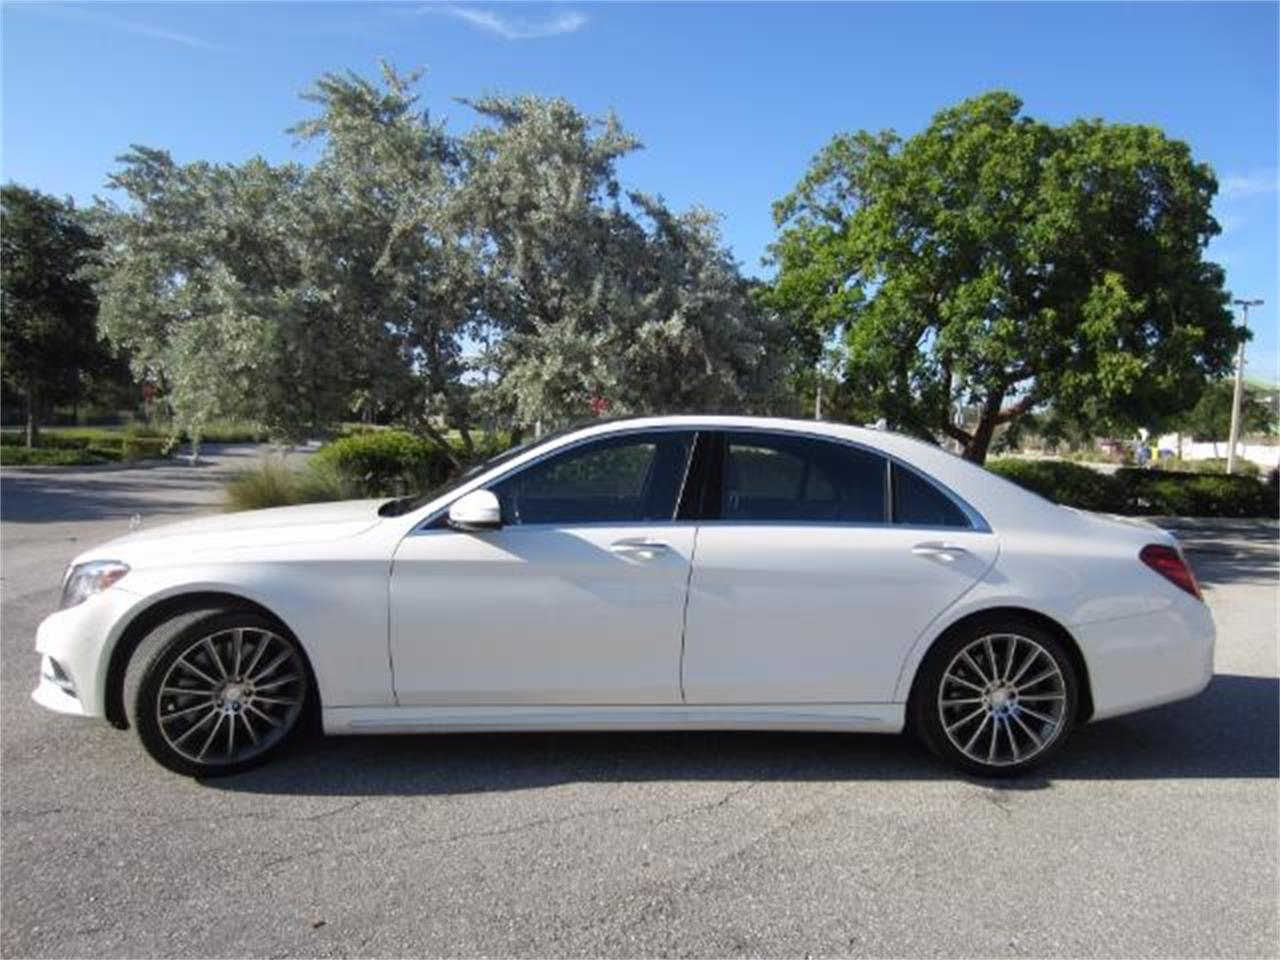 For Sale: 2015 Mercedes Benz S550 In Delray Beach, Florida